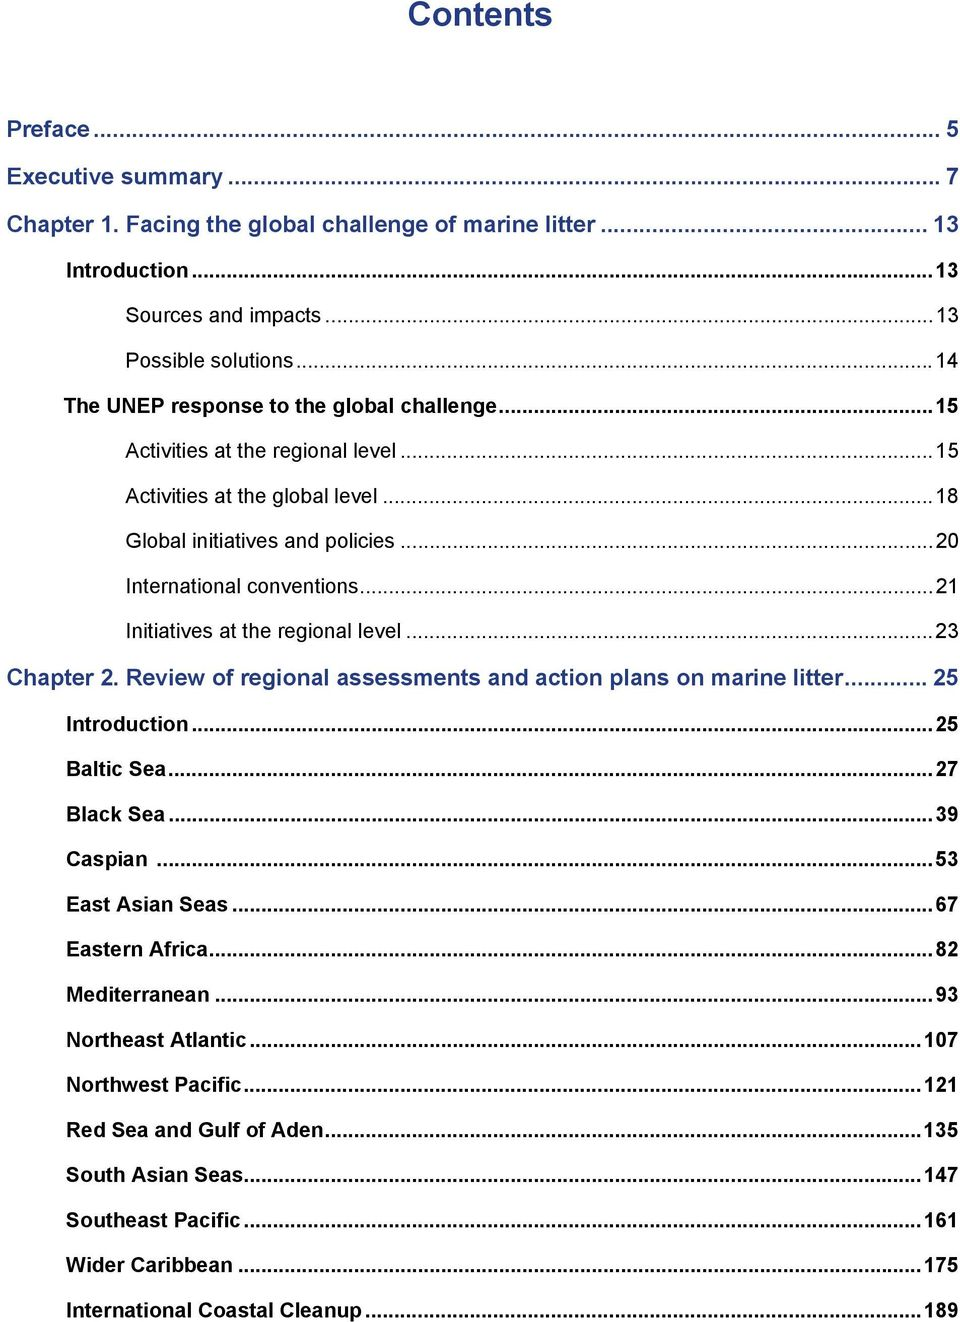 ..21 Initiatives at the regional level...23 Chapter 2. Review of regional assessments and action plans on marine litter... 25 Introduction...25 Baltic Sea...27 Black Sea...39 Caspian.